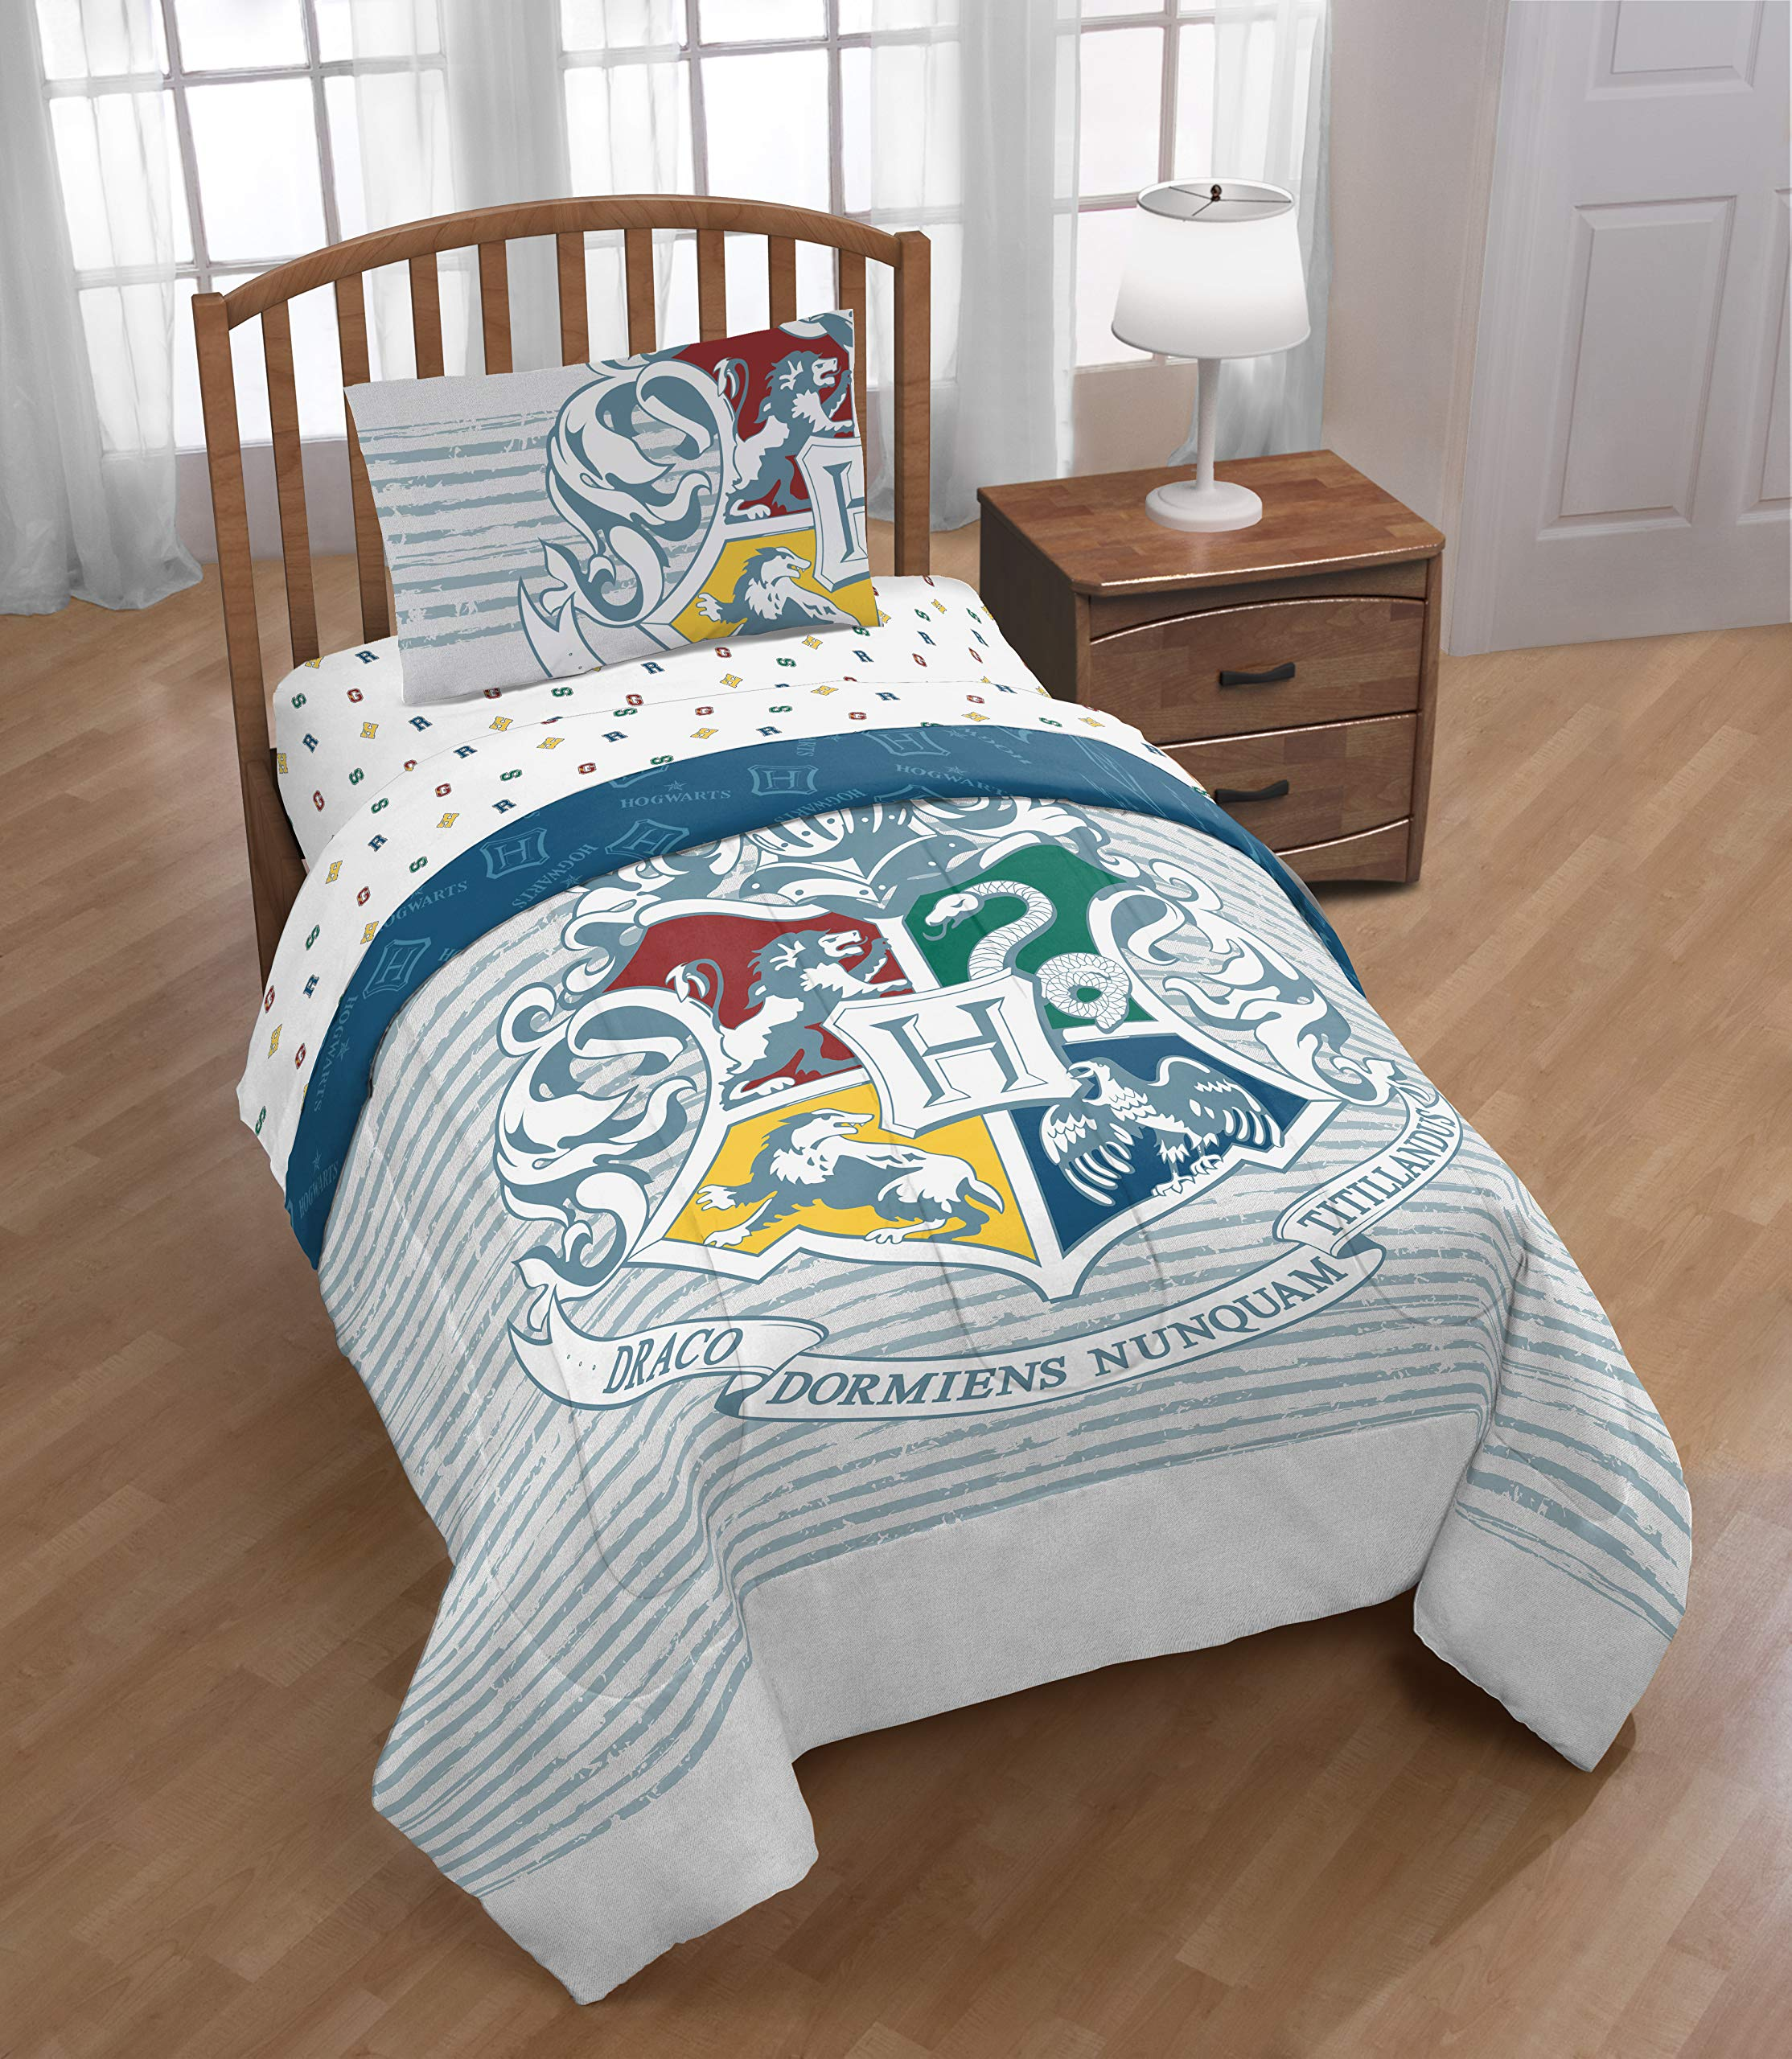 Jay Franco Harry Potter Wizardry 5 Piece Full Bed Set, Featuring Hogwarts Logo, Gray